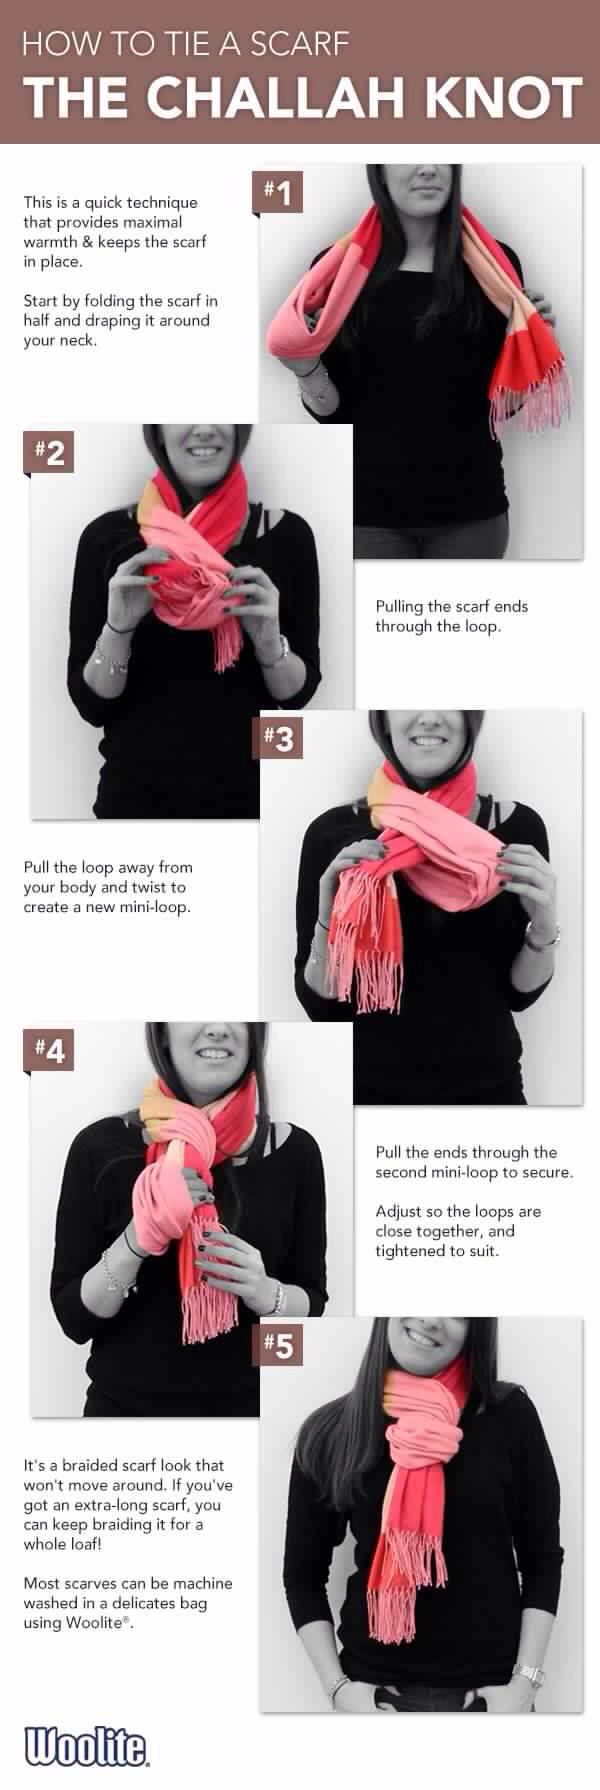 How to tie the scarf - the Challah Knot. #ScarfTying #Scarf #Scarves via…